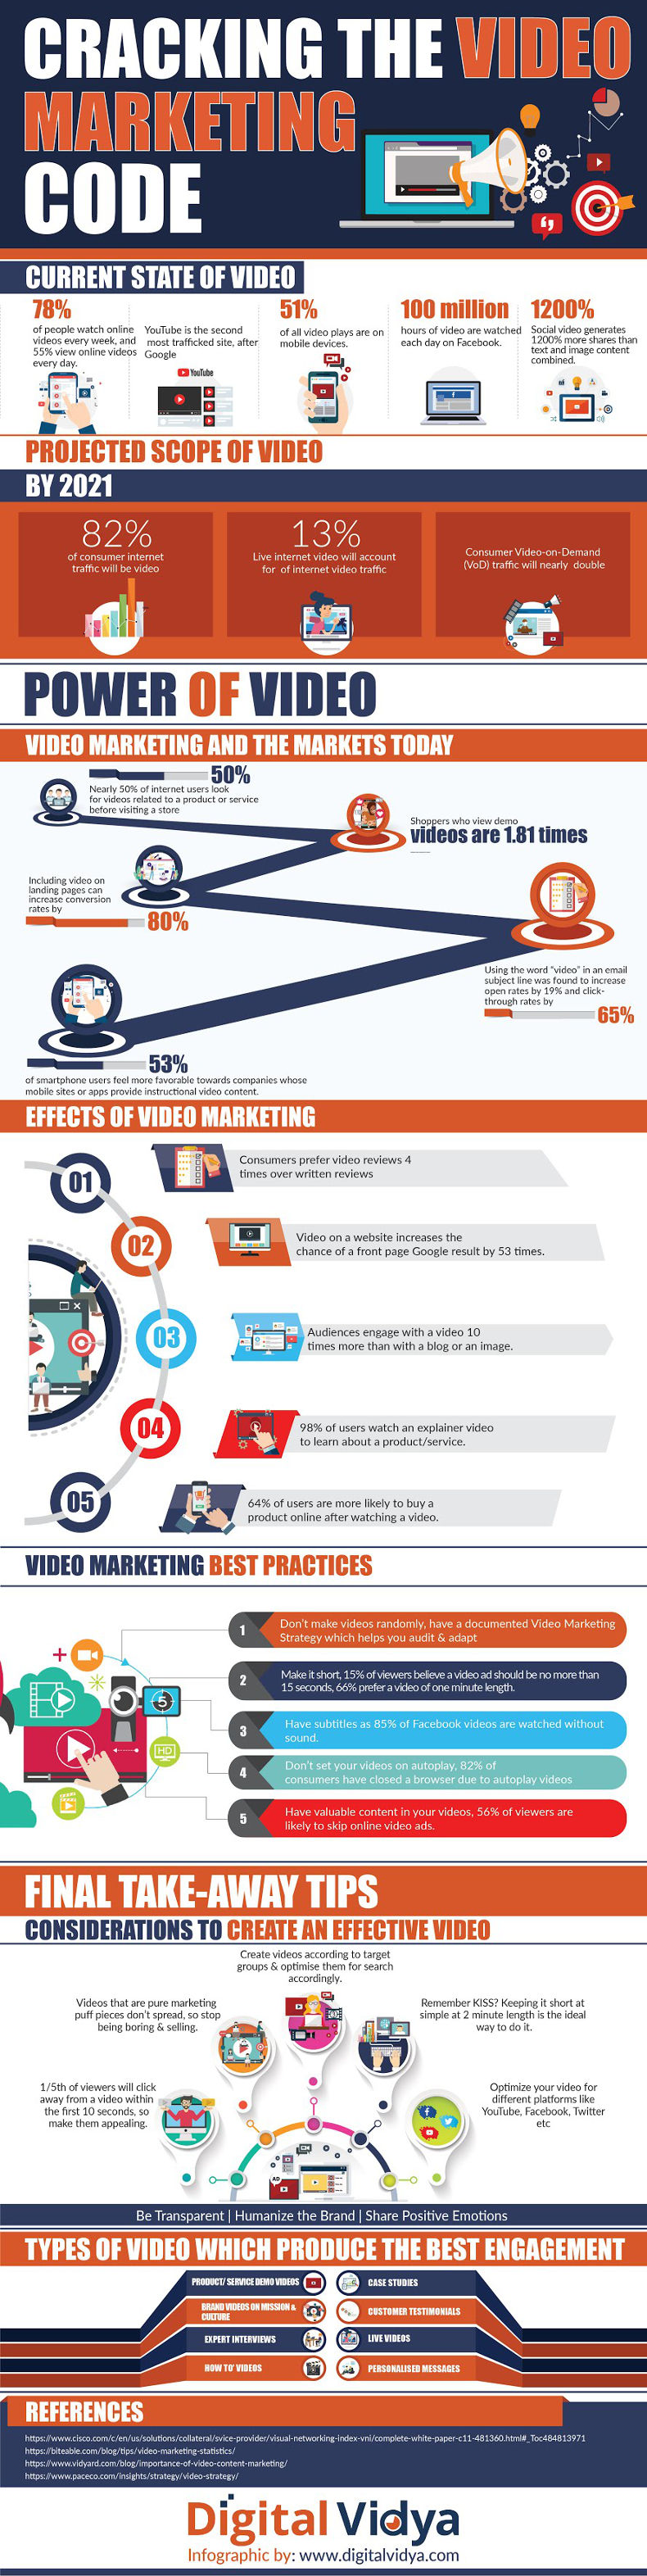 Your Guide to Video Marketing: Crack the Video Code [Infographic]